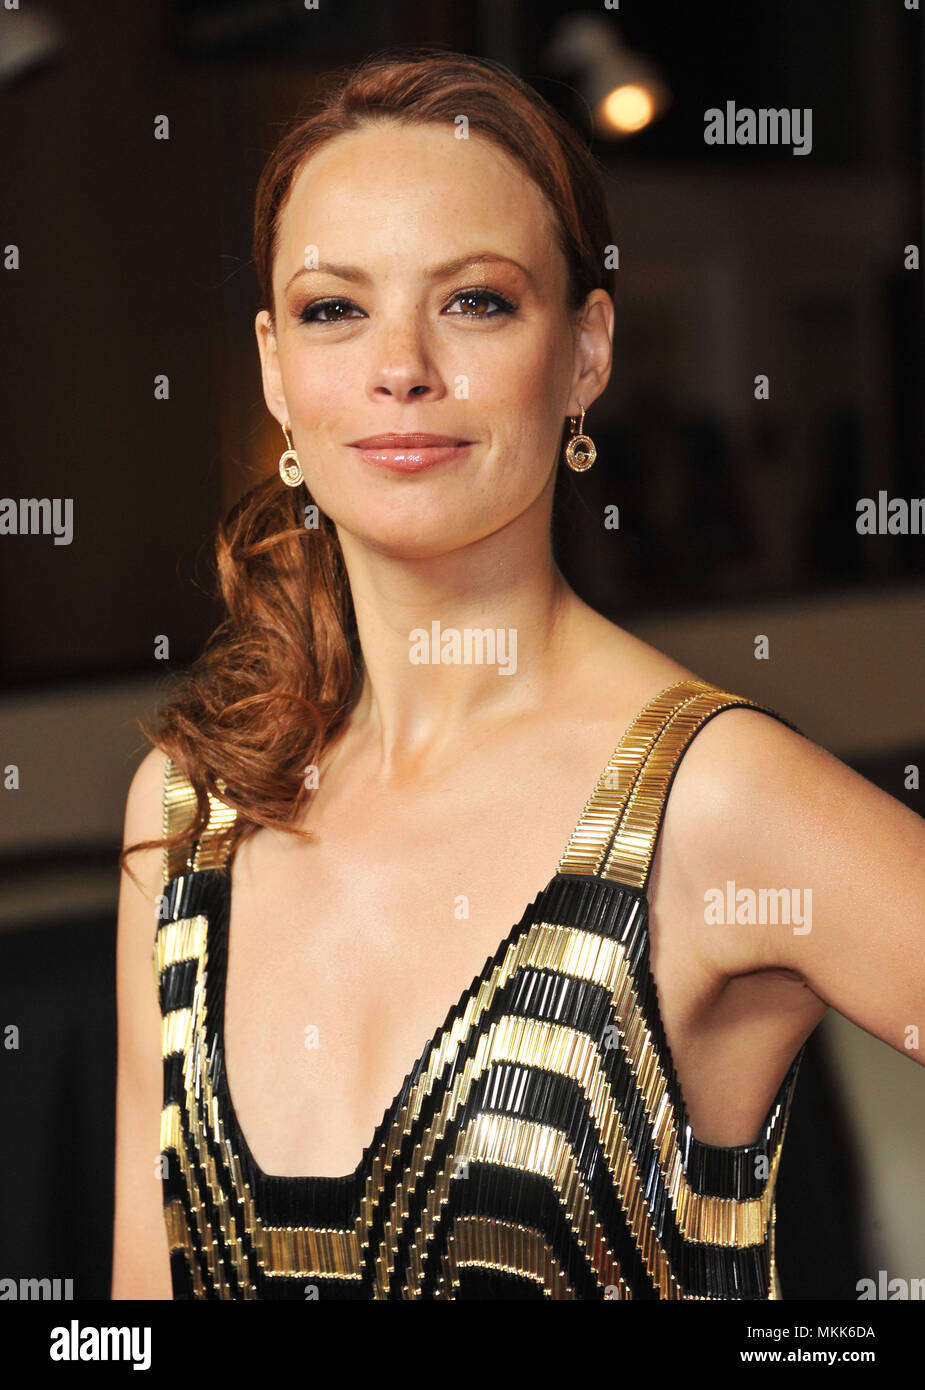 Berenice Bejo At The Dga Awards 2012 At The Kodak Theatre In Los Angeles Berenice Bejo 47 Red Carpet Event Vertical Usa Film Industry Celebrities Photography Bestof Arts Culture And Entertainment Topix Celebrities Fashion